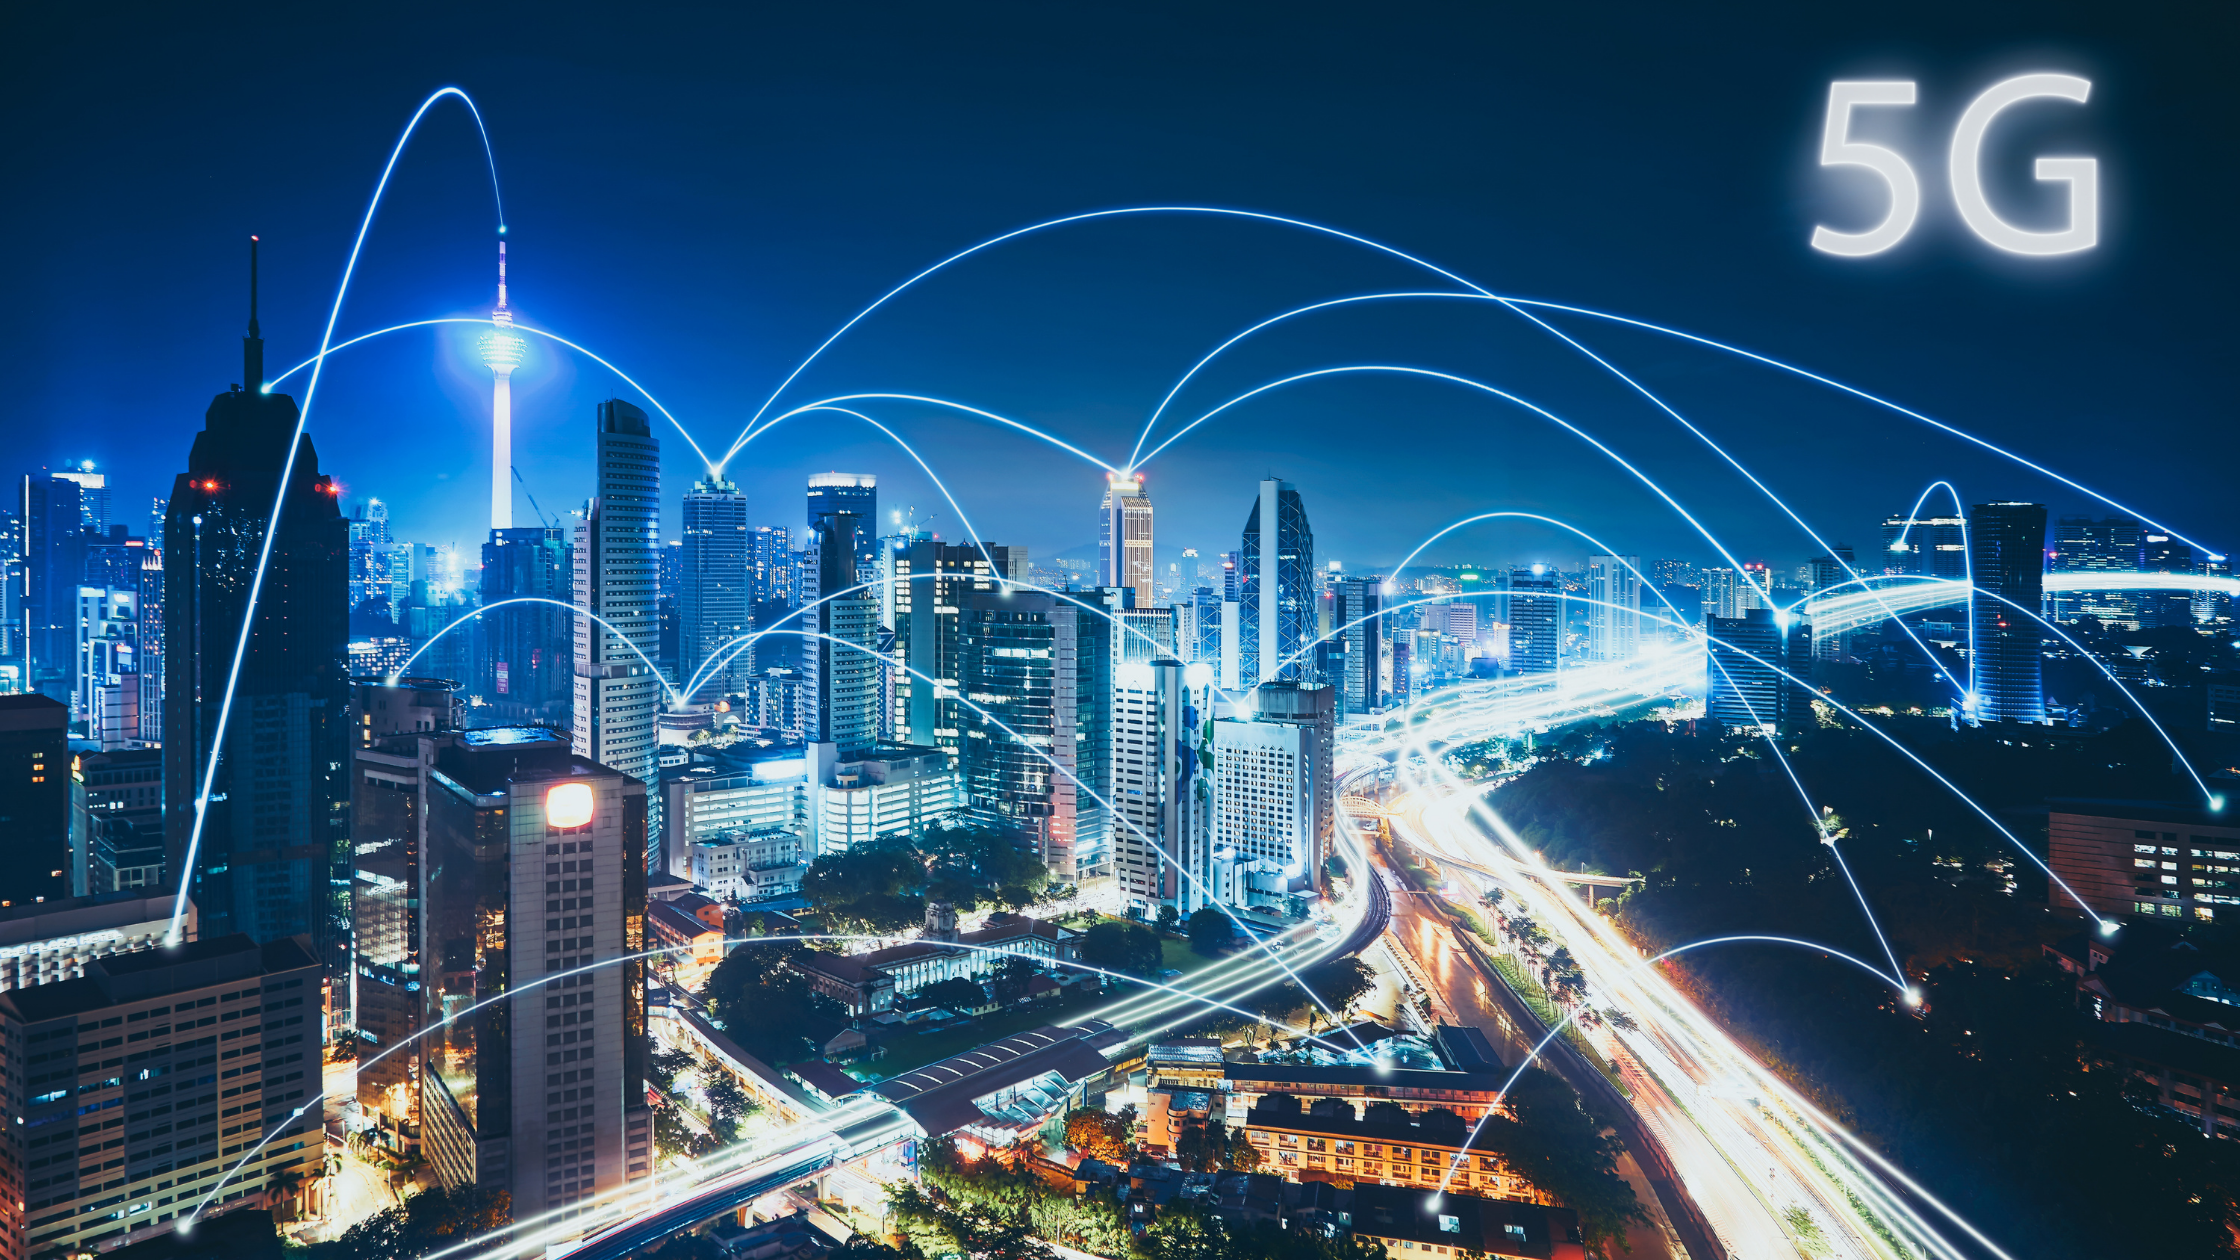 5G Adoption in 2021: Where Are We Now & Where Are We Going?